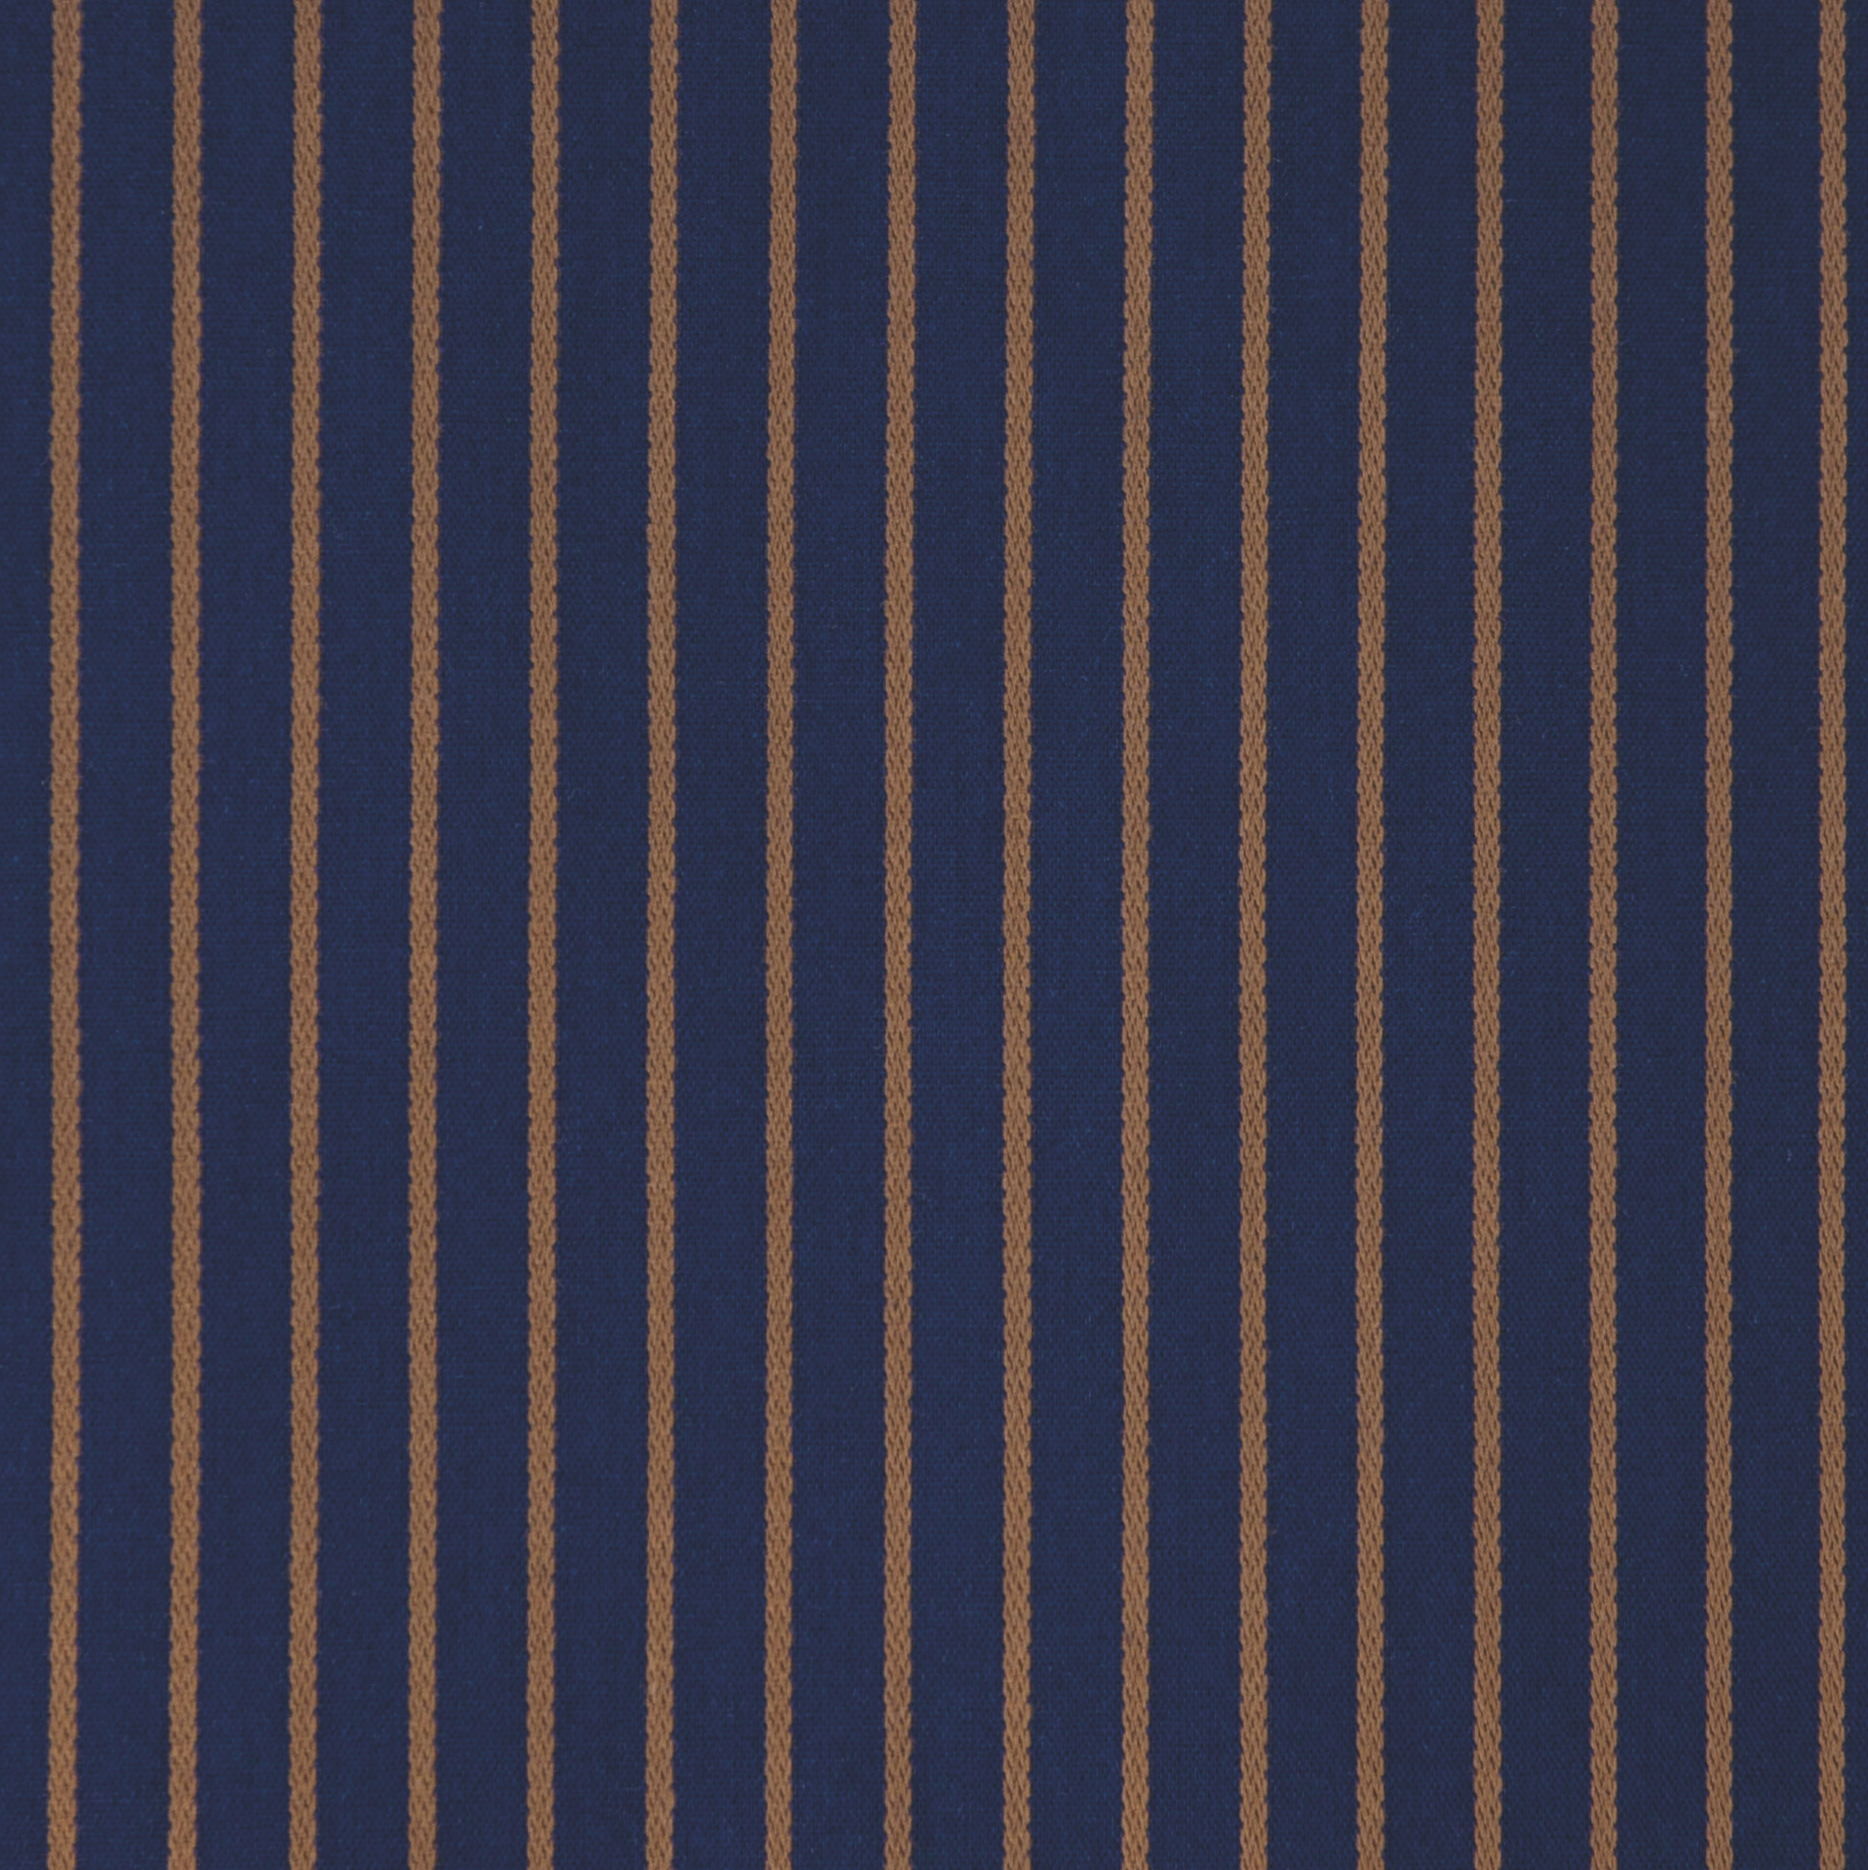 Buy tailor made shirts online - Presidents Range - Navy with Tan Stripe